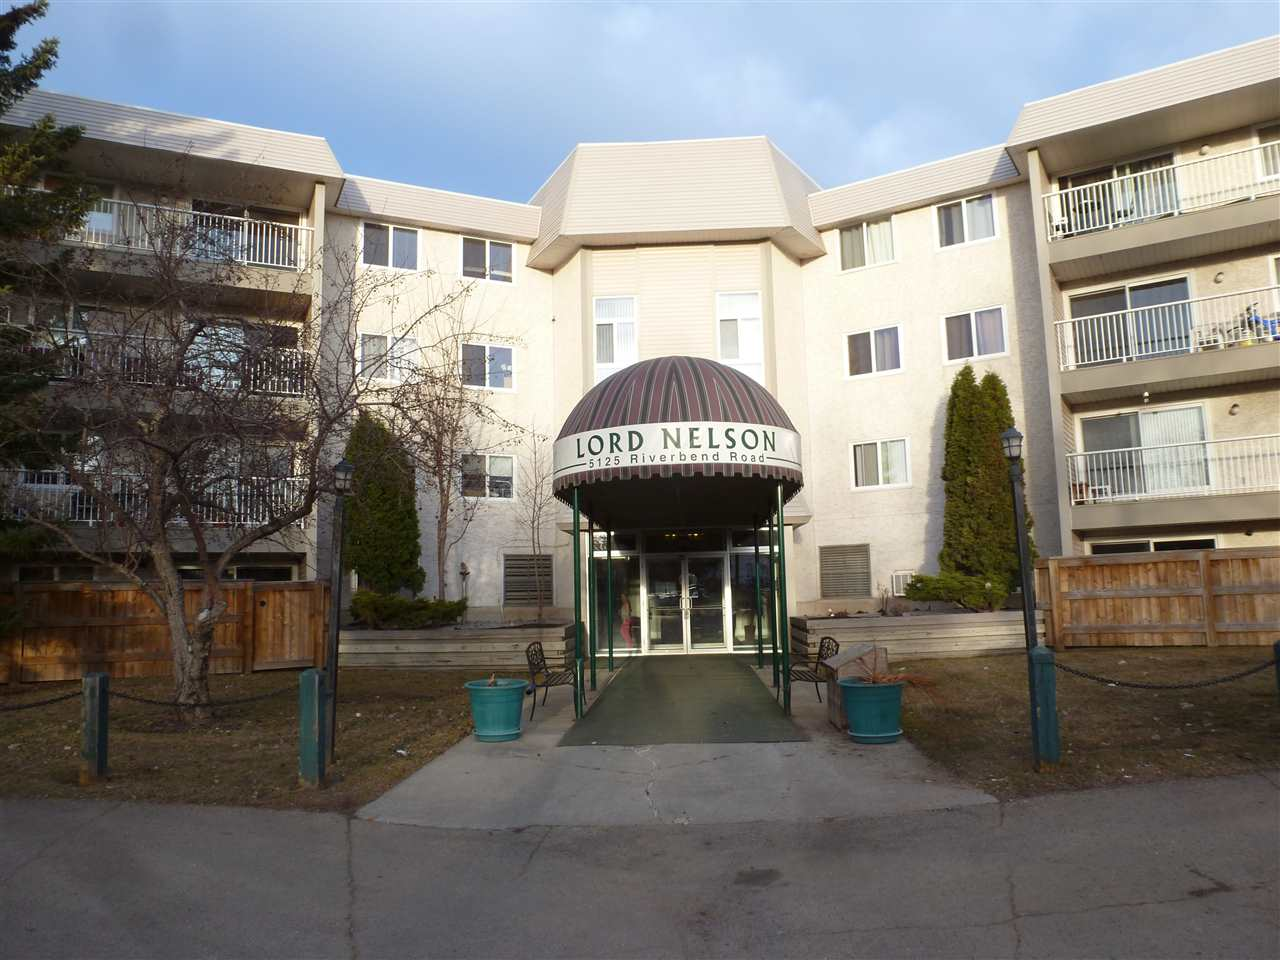 **INCREDIBLE VALUE - NEW PRICE of $188,888** for this very spacious ** 3-Bedroom/2 Bathroom** Condo(1150 Sq Ft) on the 3rd Floor at the Lord Nelson in Riverbend/Brandner Gardens. Features newer laminate flooring, windows and  upgraded blinds, galley kitchen, Balcony. Massive and marvellous black wall unit in Living Room will stay. Comes with 2 Outside Parking Stalls(1 under cover). The Lord Nelson also features an Indoor Swimming Pool and HotTub off the main floor. Guest Suite and Visitor Parking is also available. Great location too - close to schools and with quick access to the Whitemud Freeway. **Very Quick Possession Available!**